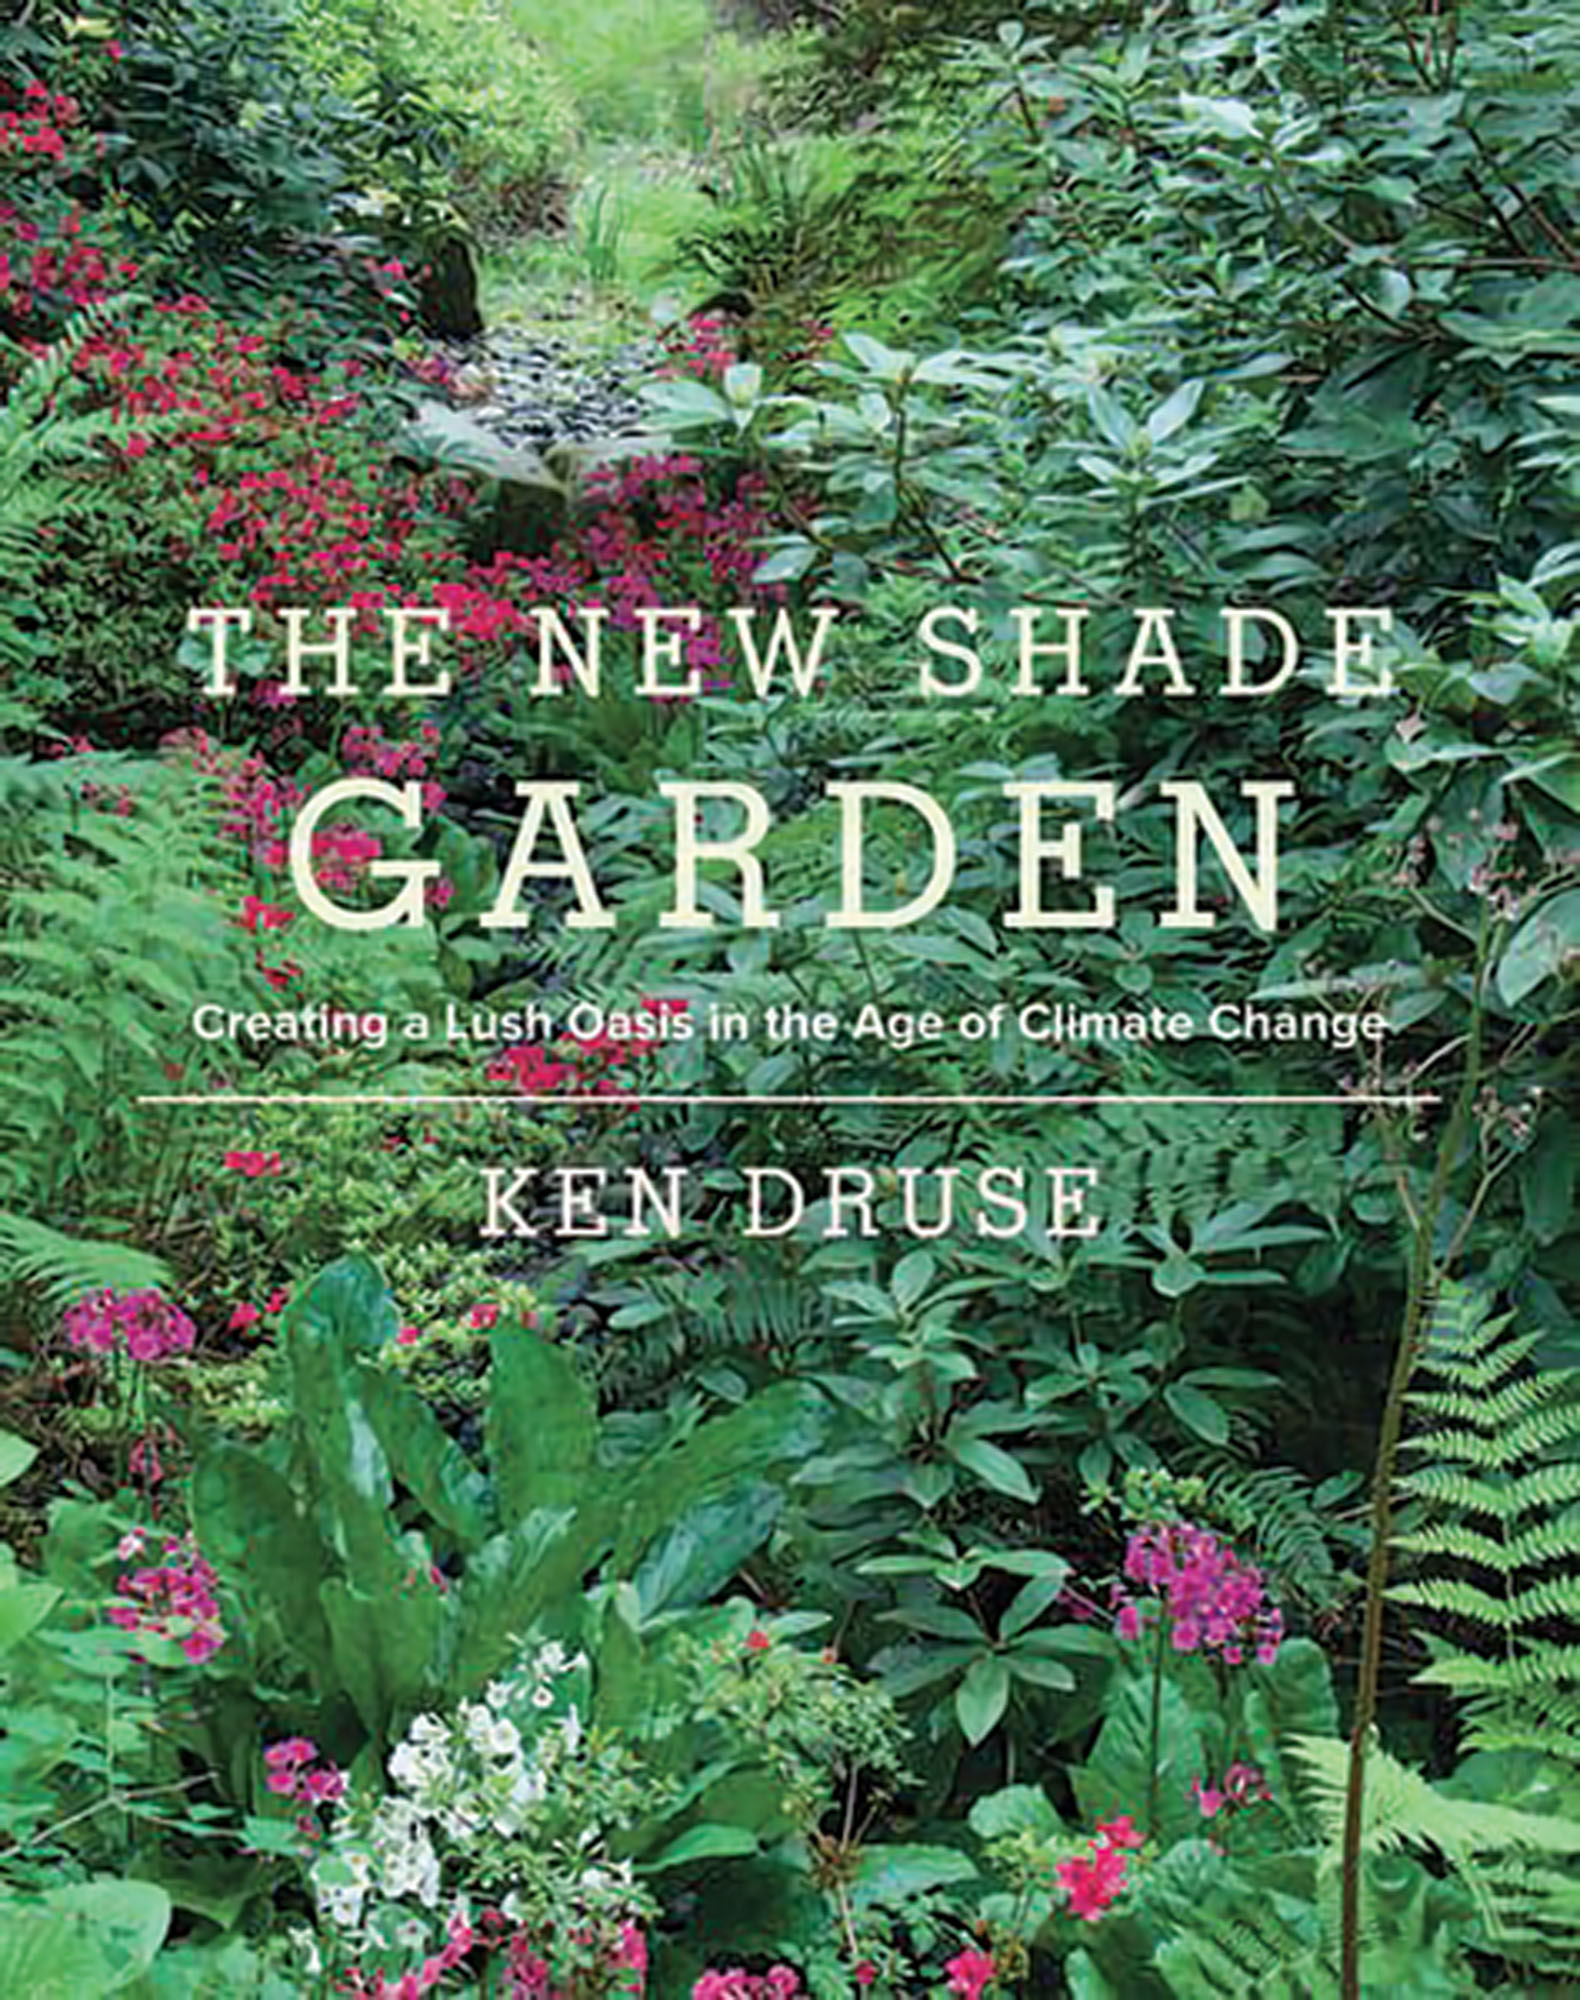 The New Shade Garden book, gardening book